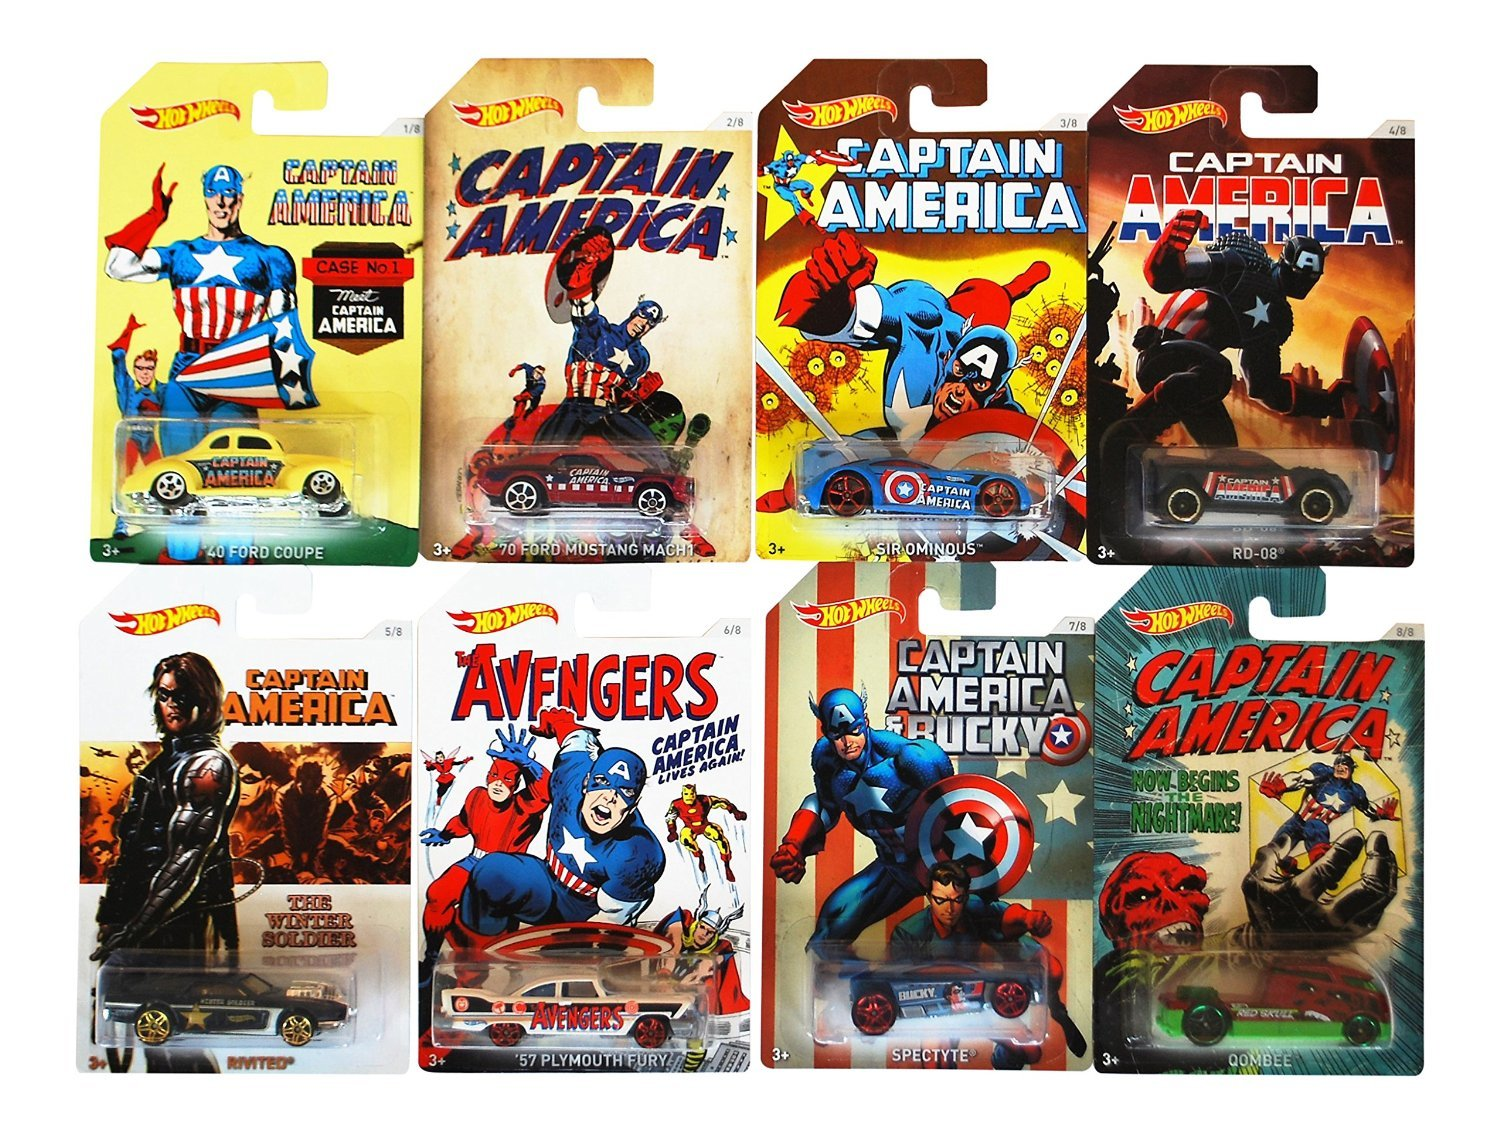 Captain America Hot Wheels Cars, Avengers, Infinity War, Marvel Universe, MCU, Iron Man, Thor, Thanos, cosplay gear, action figures, Marvel items, Hulk, Spider Man, Captain America, Black Widow, Doctor Strange,